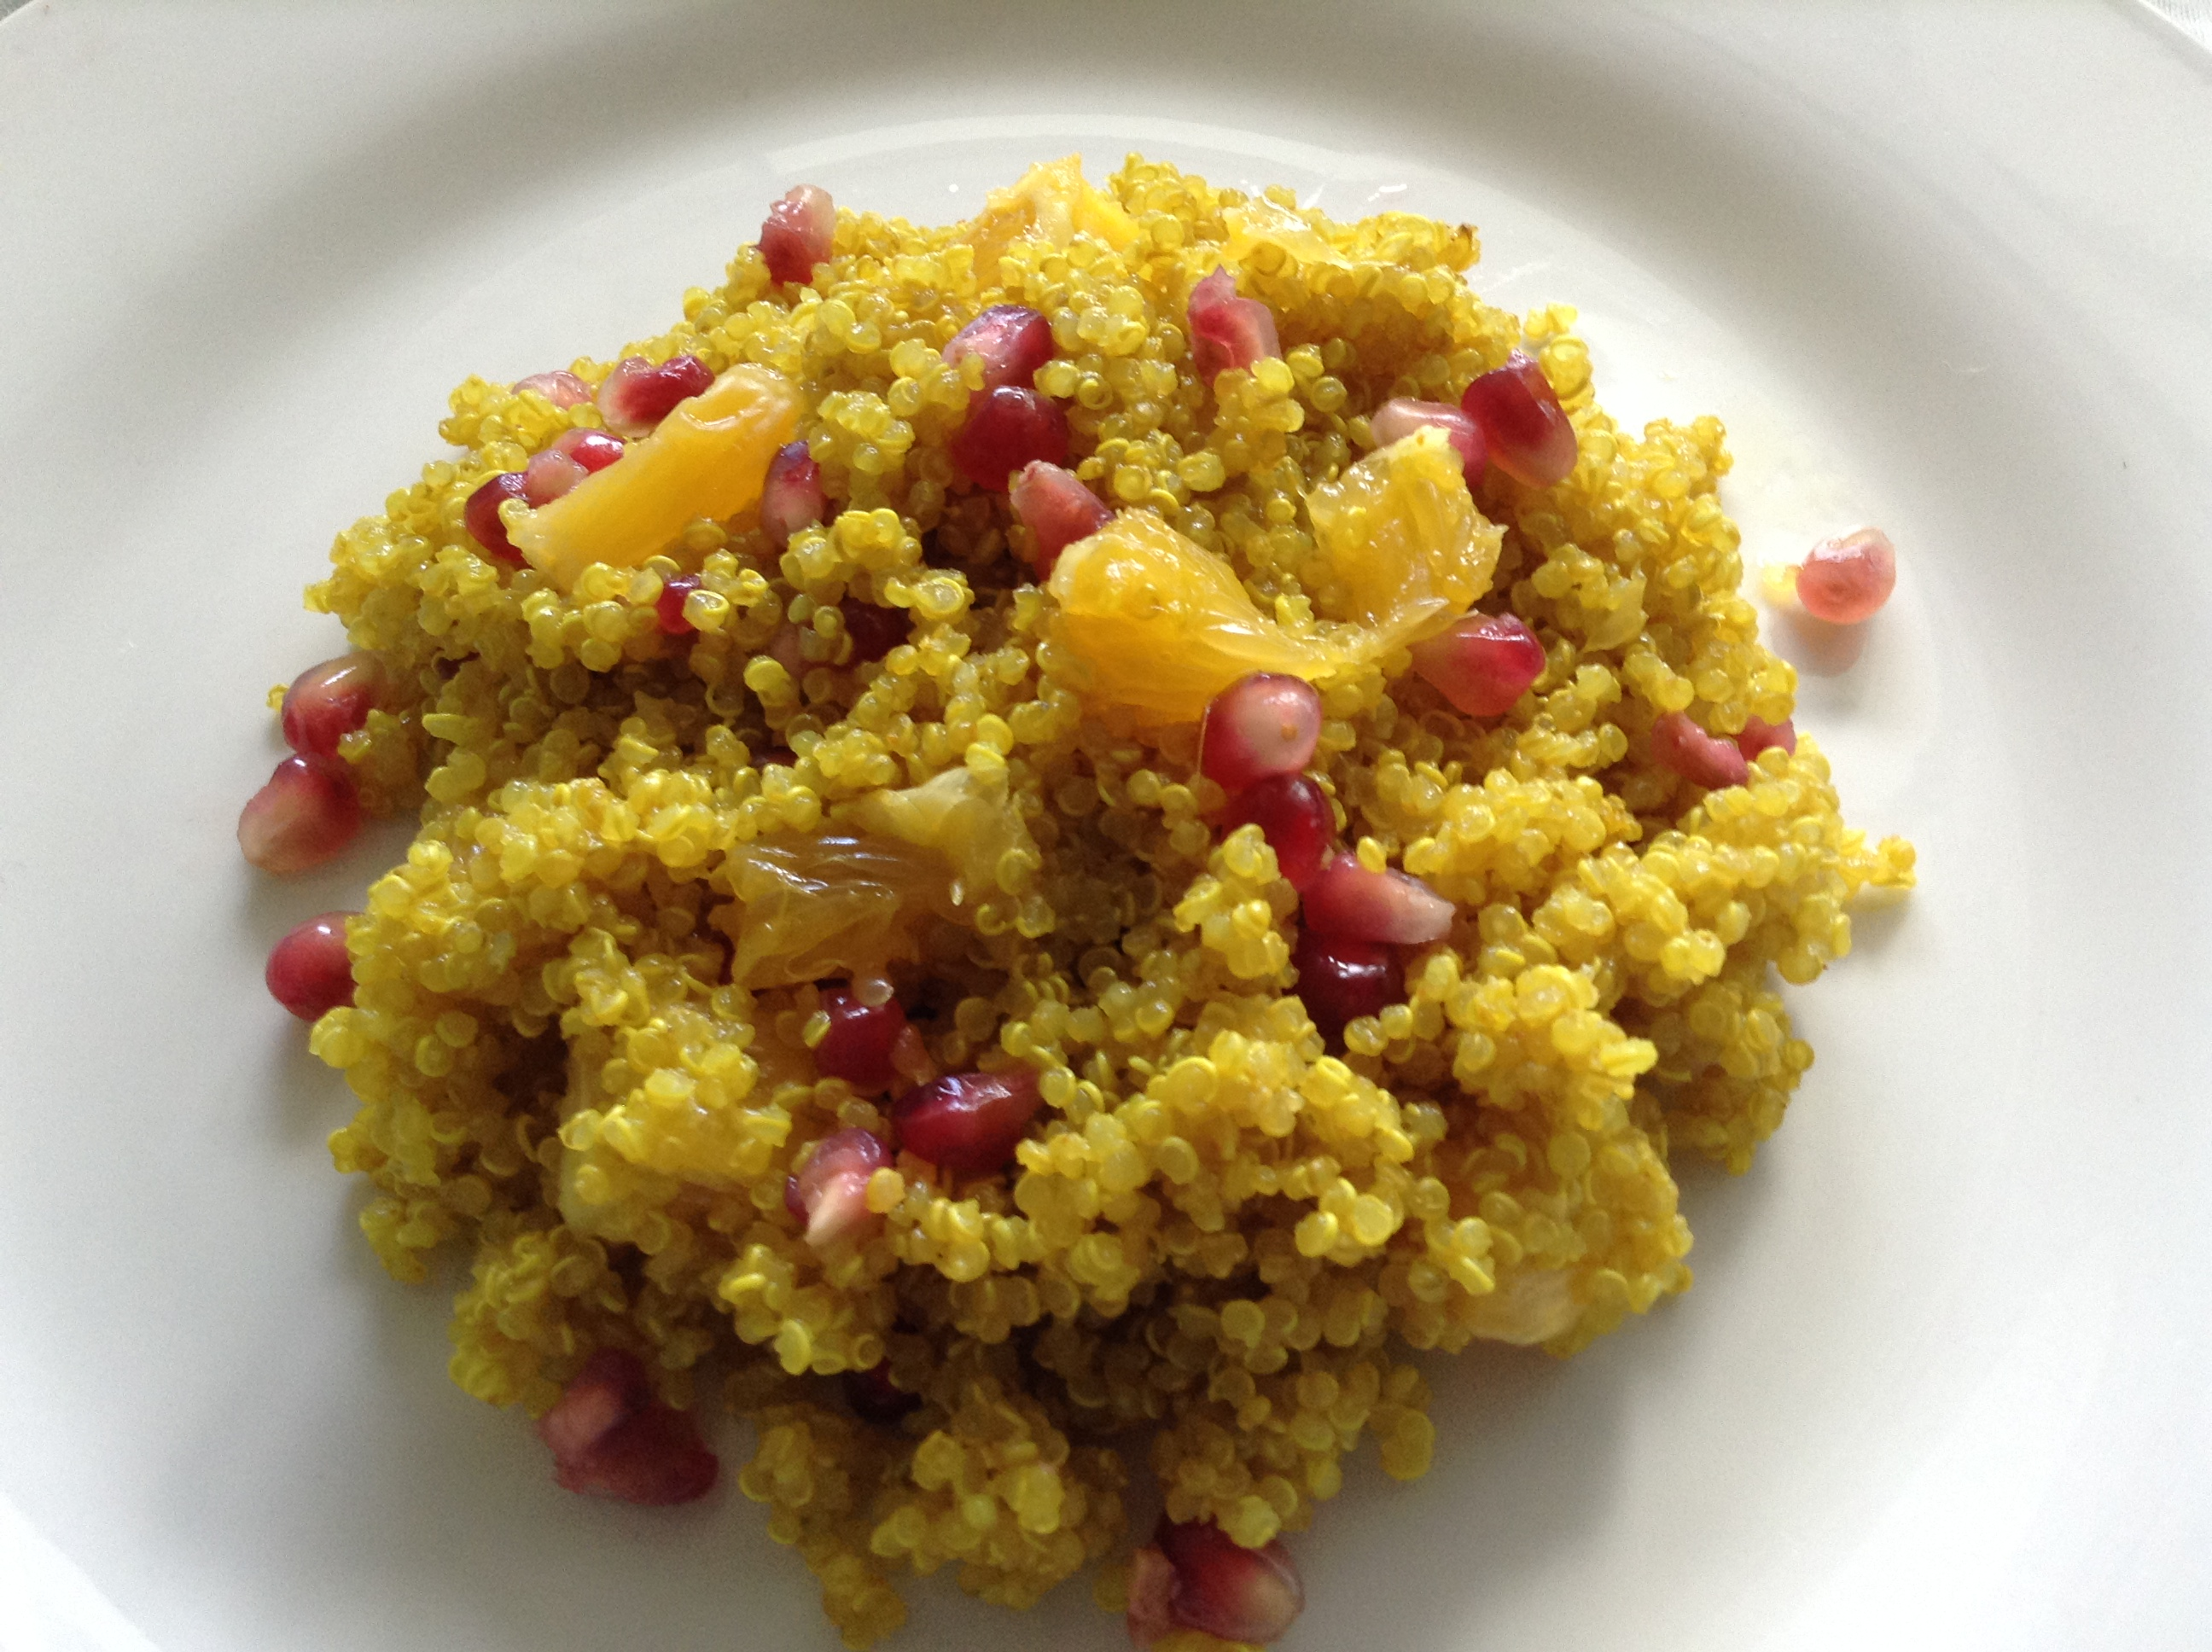 Pomegranate & orange quinoa salad